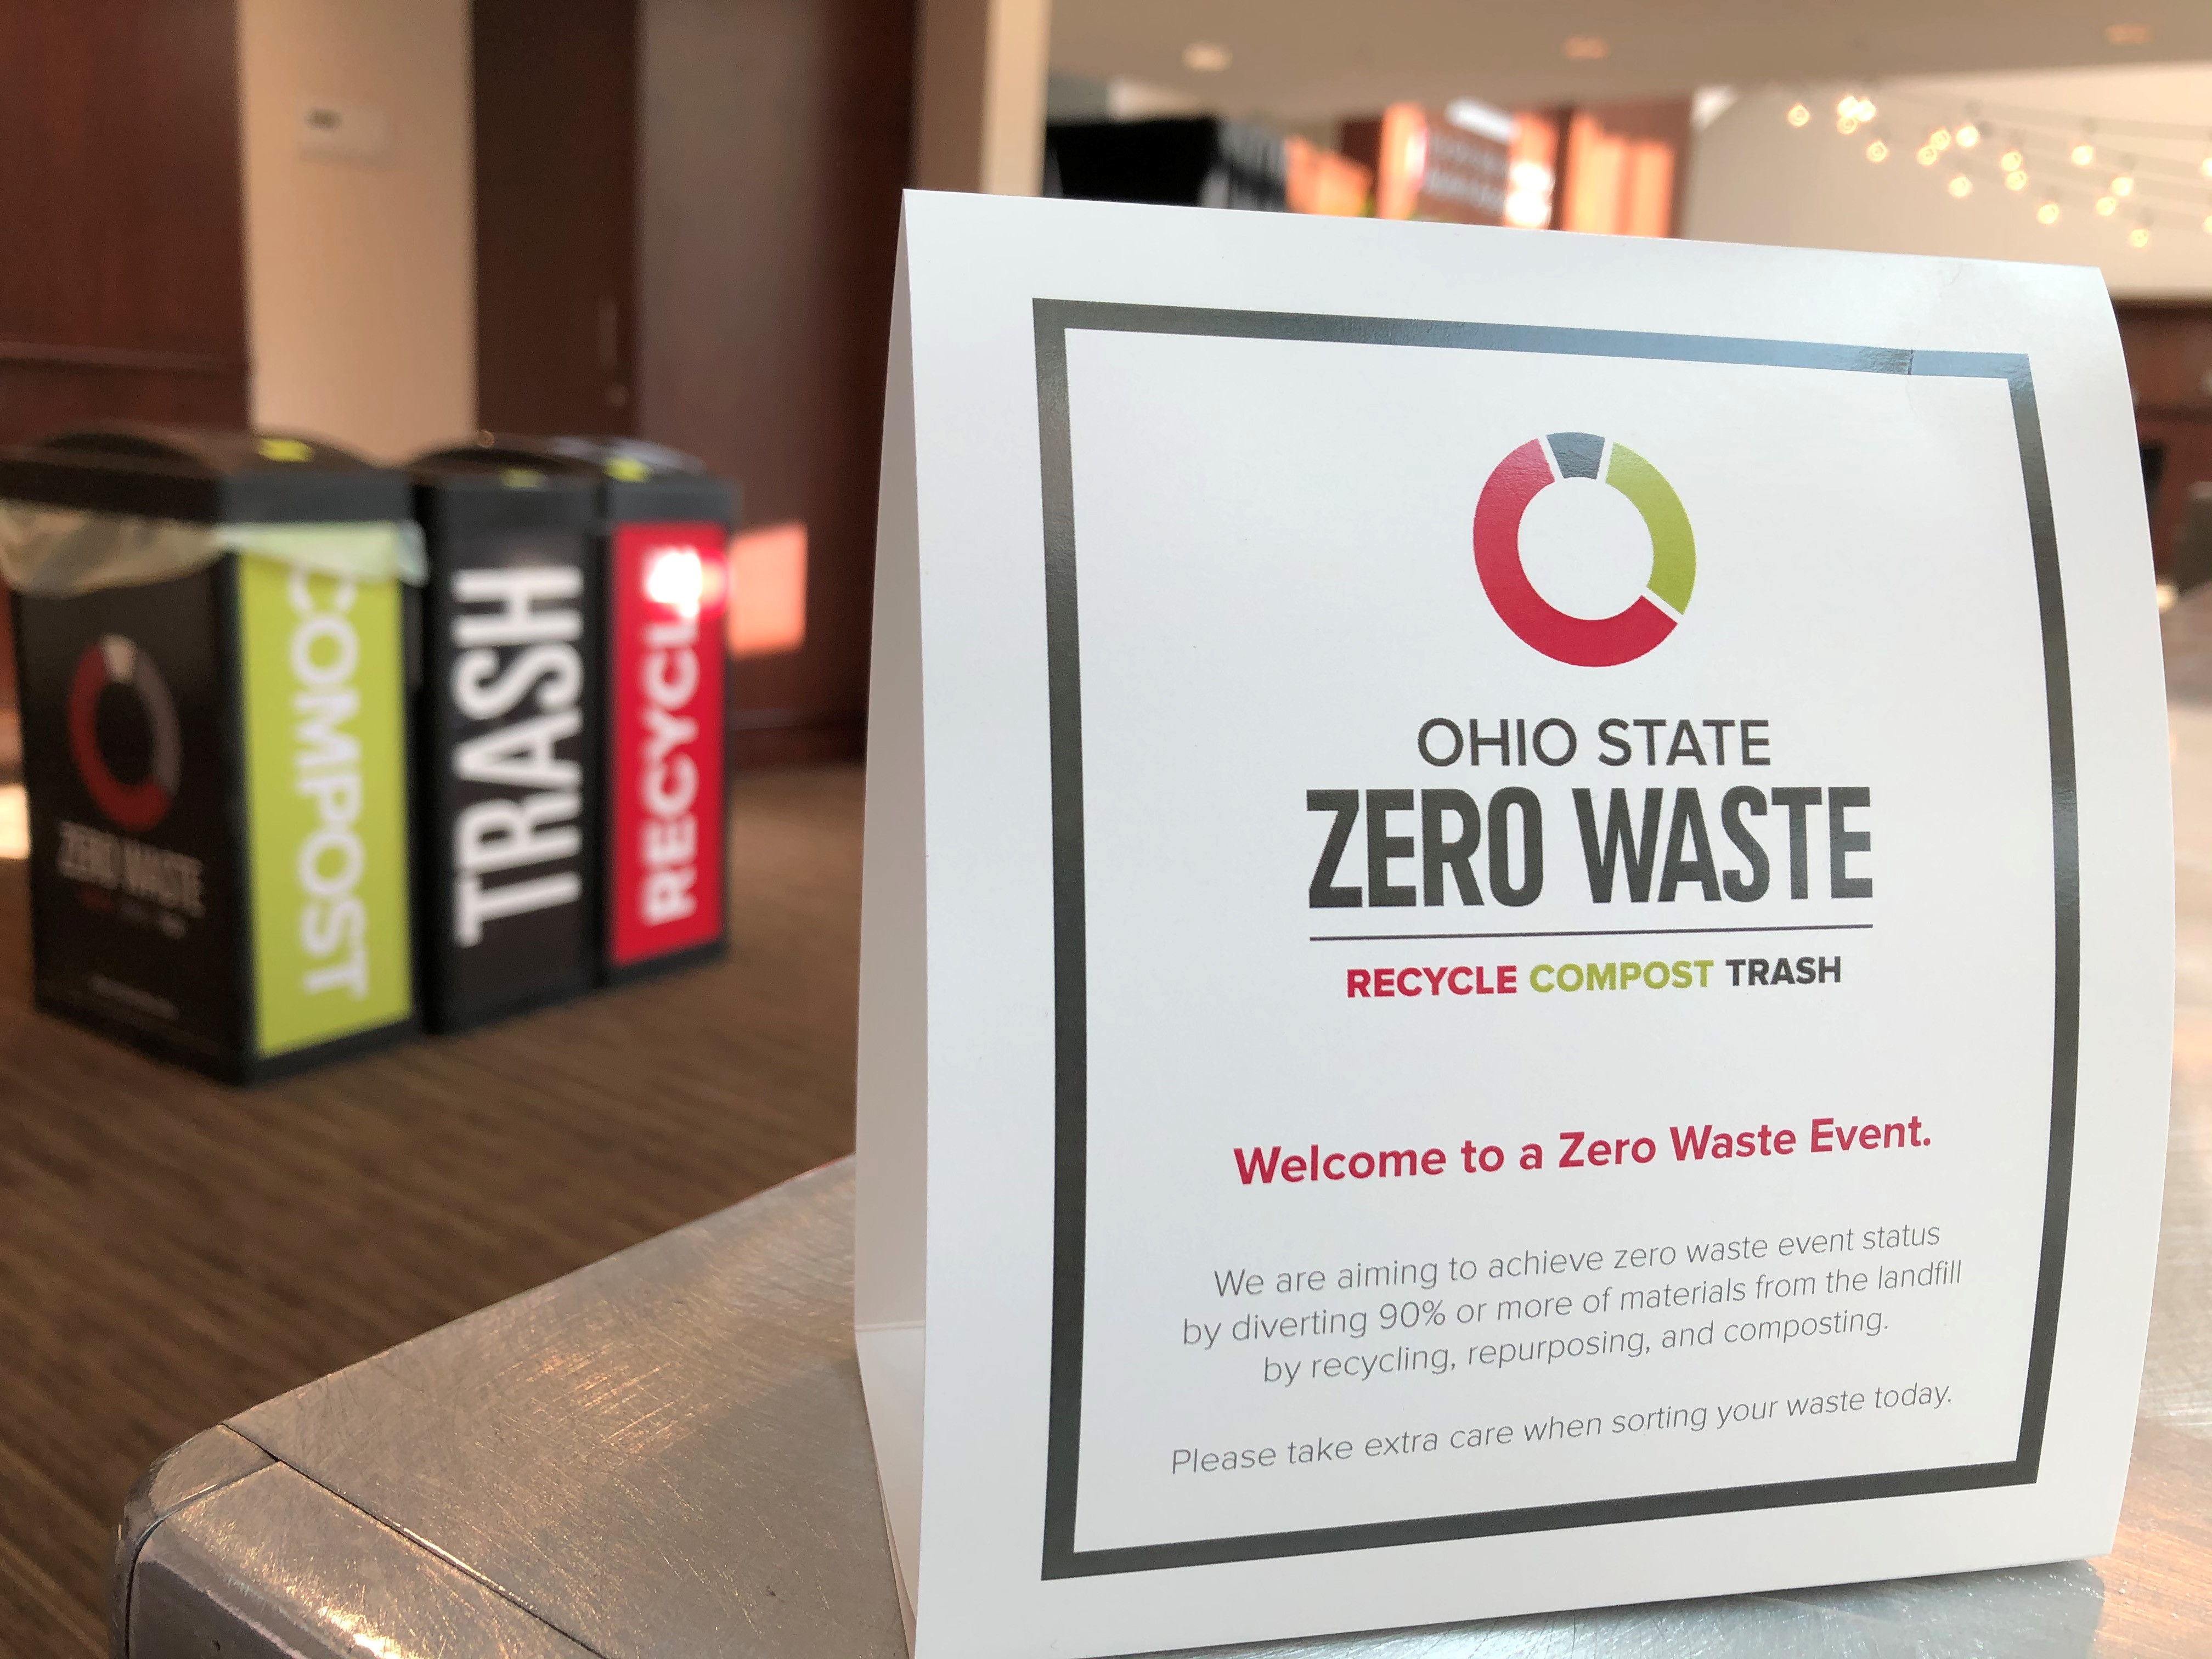 zero waste bins blurred in the background, with table placard in the foreground